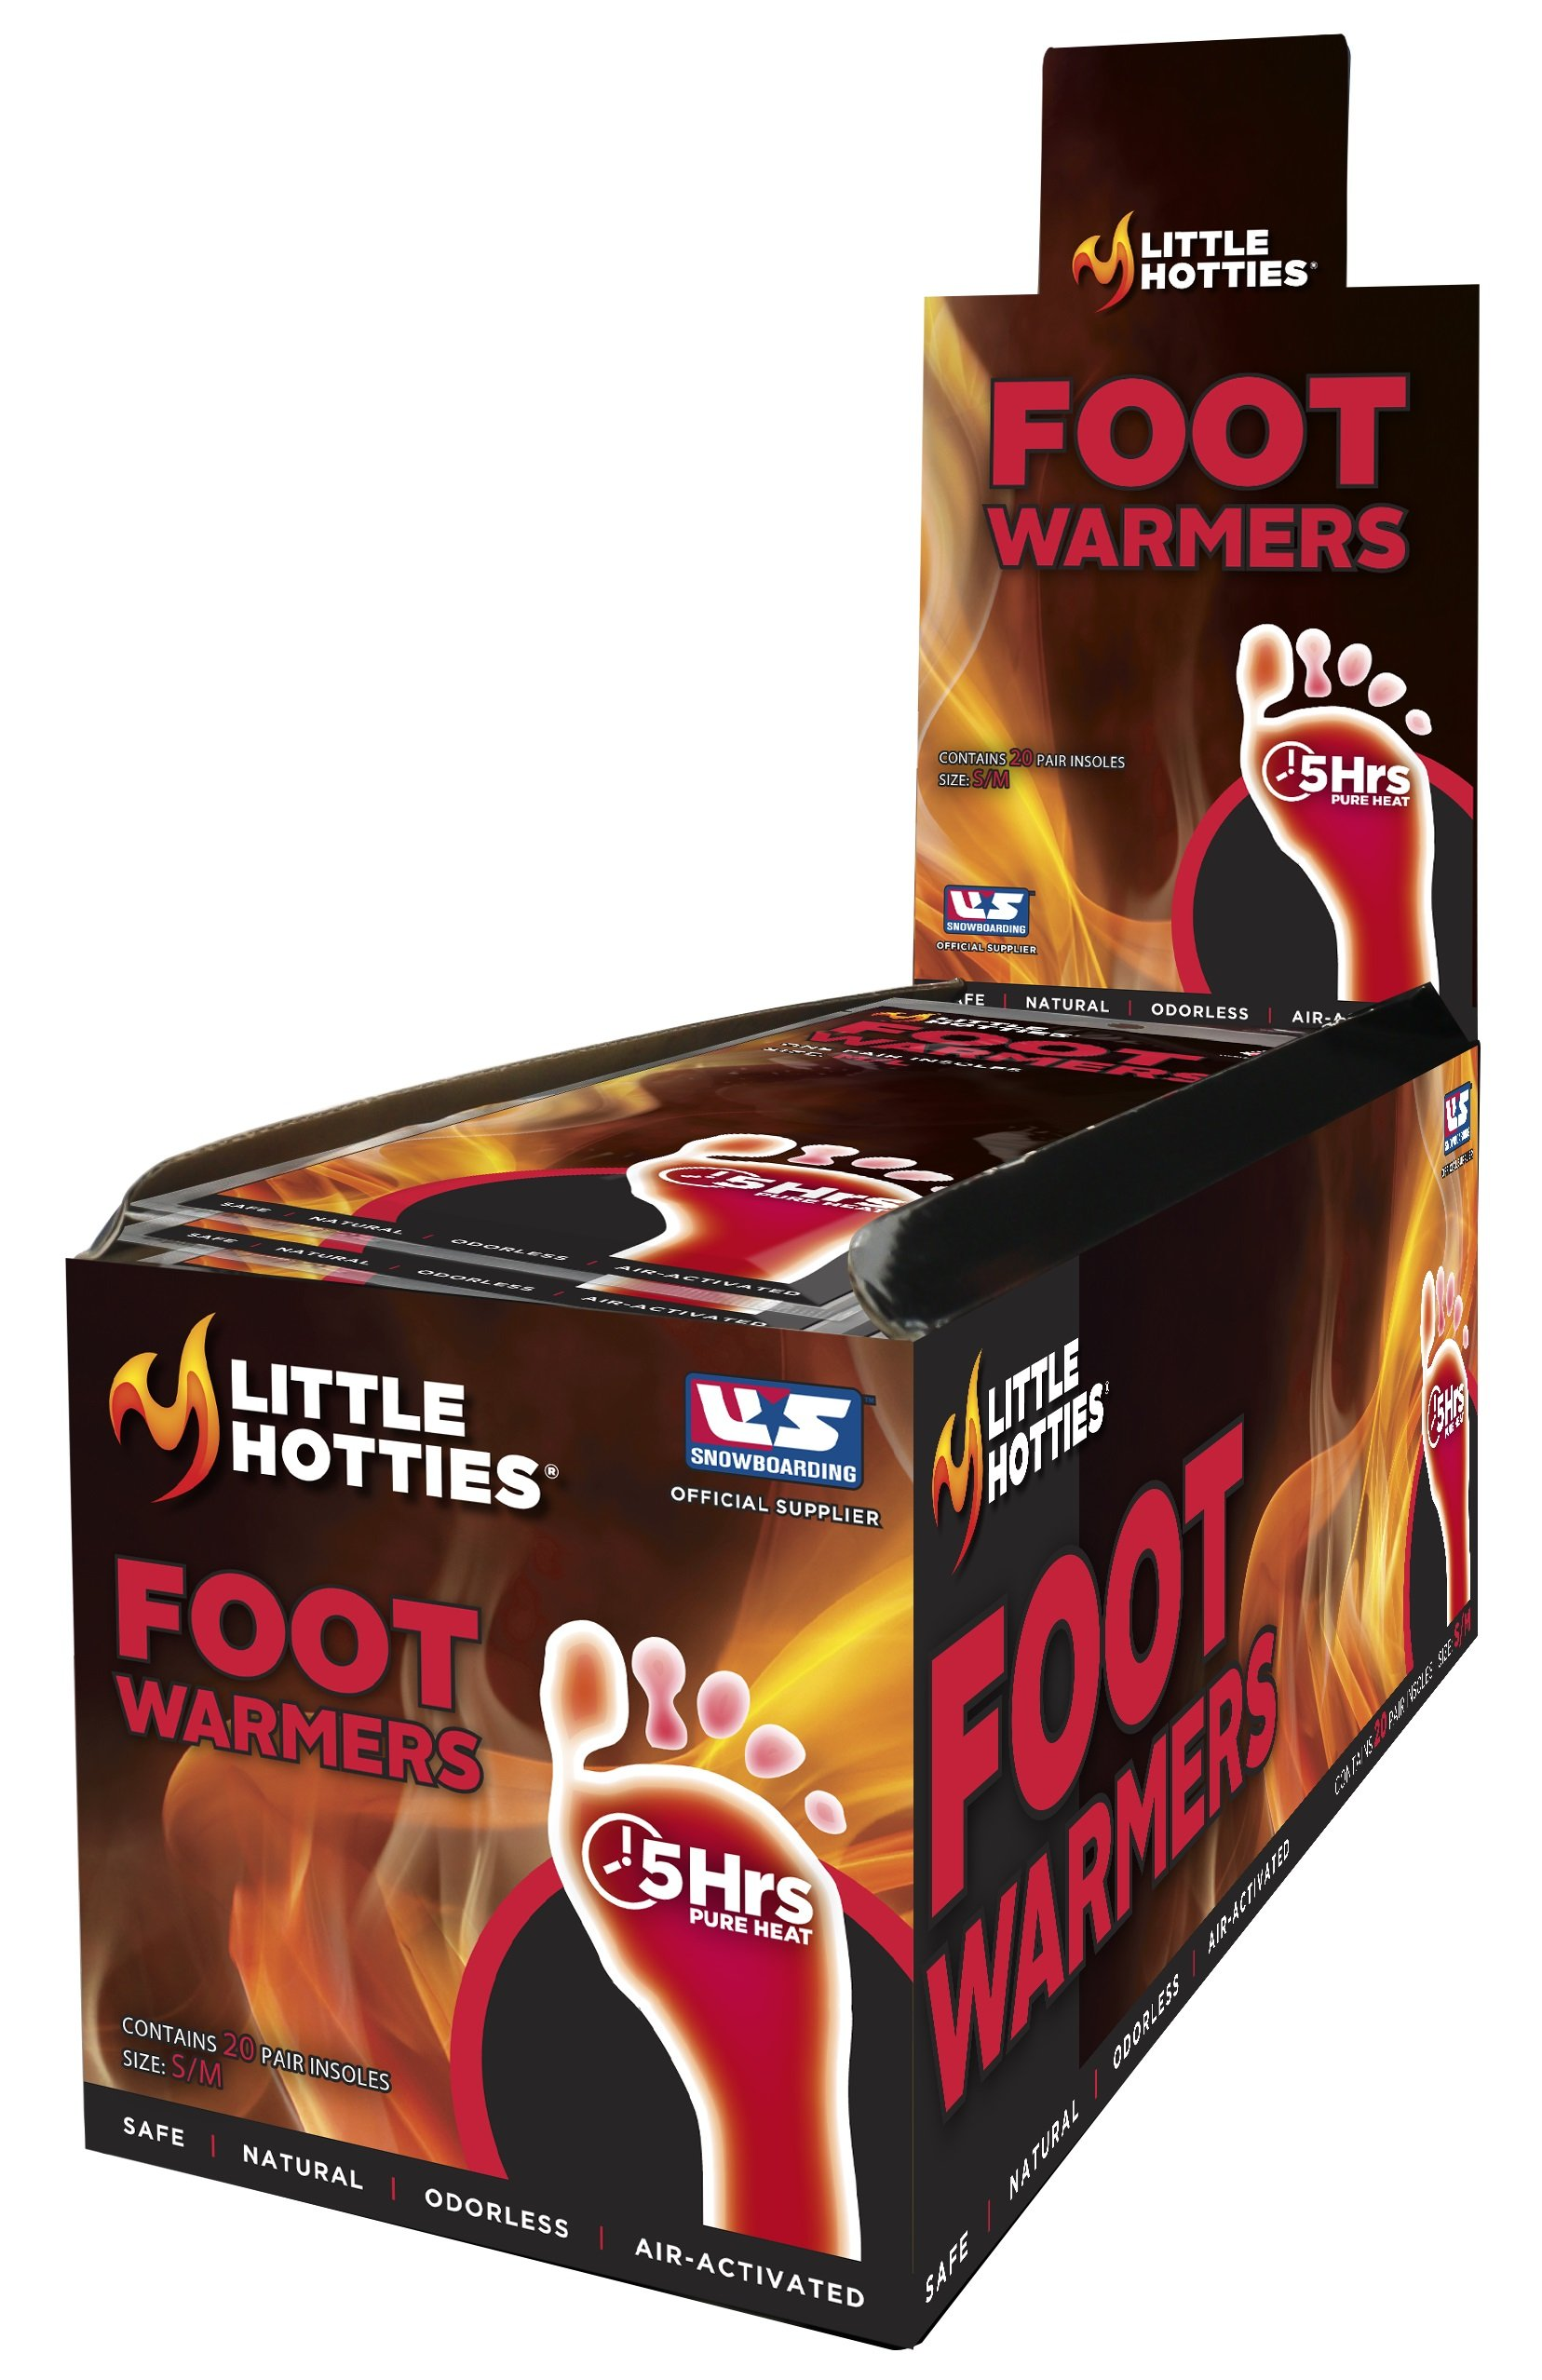 Little Hotties 5-Hour Insole Foot Warmer, Pack of 20 Pair, Medium/Large